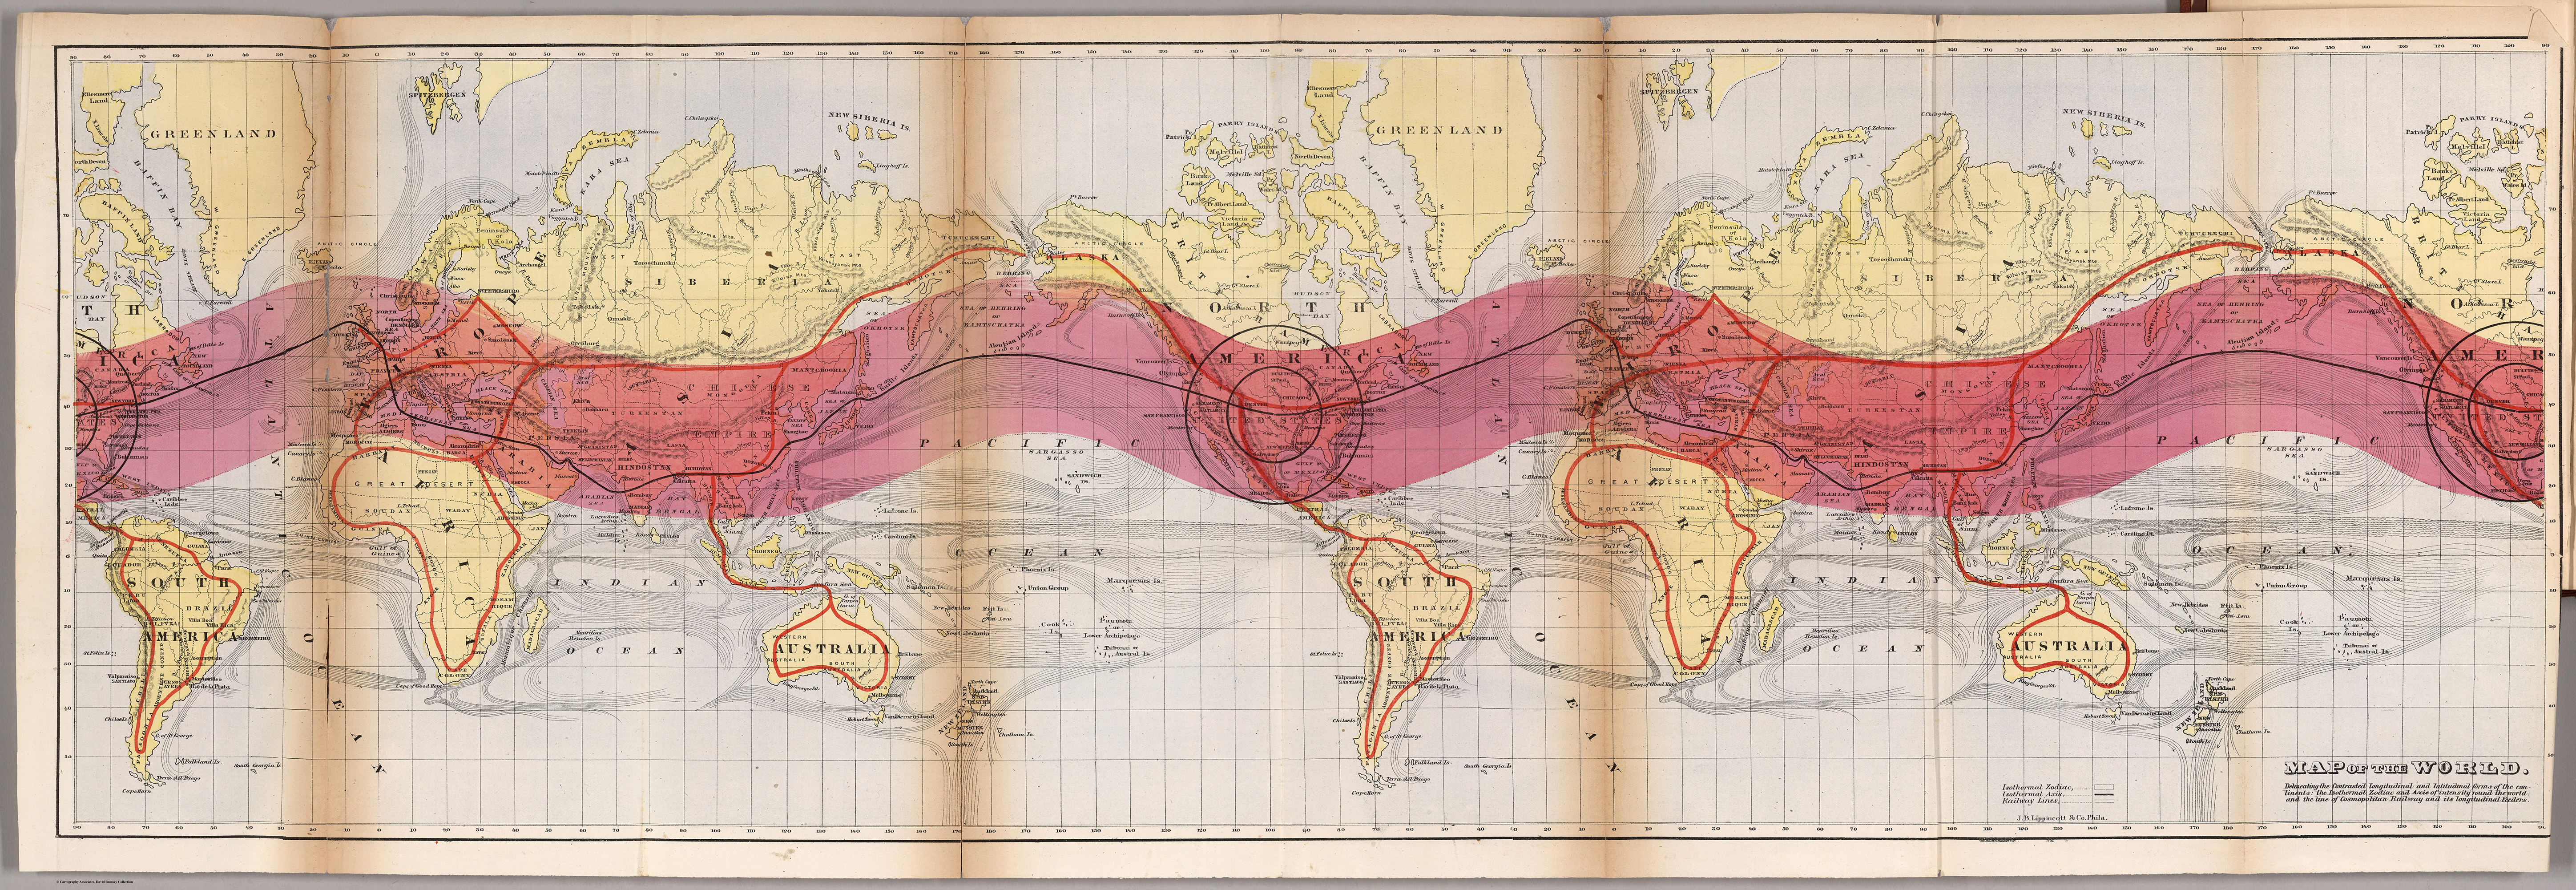 11 Color on Maps   Making Maps  DIY Cartography 01 gilpin world 1872 transverse 02 gilpin world 1872